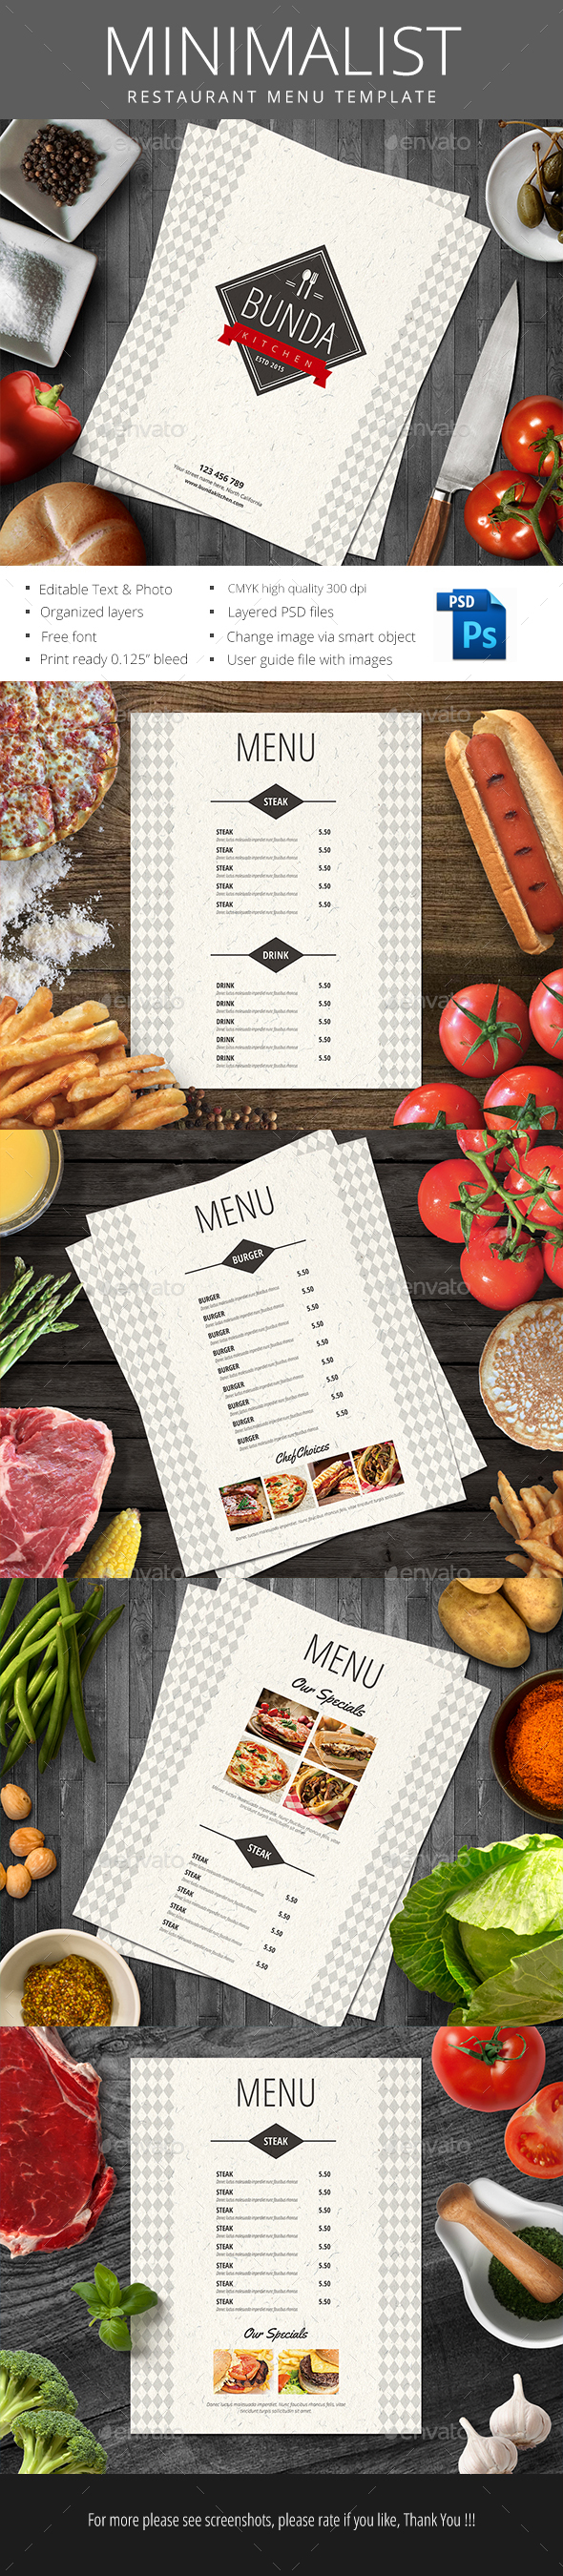 Minimalist Restaurant Menu - Food Menus Print Templates